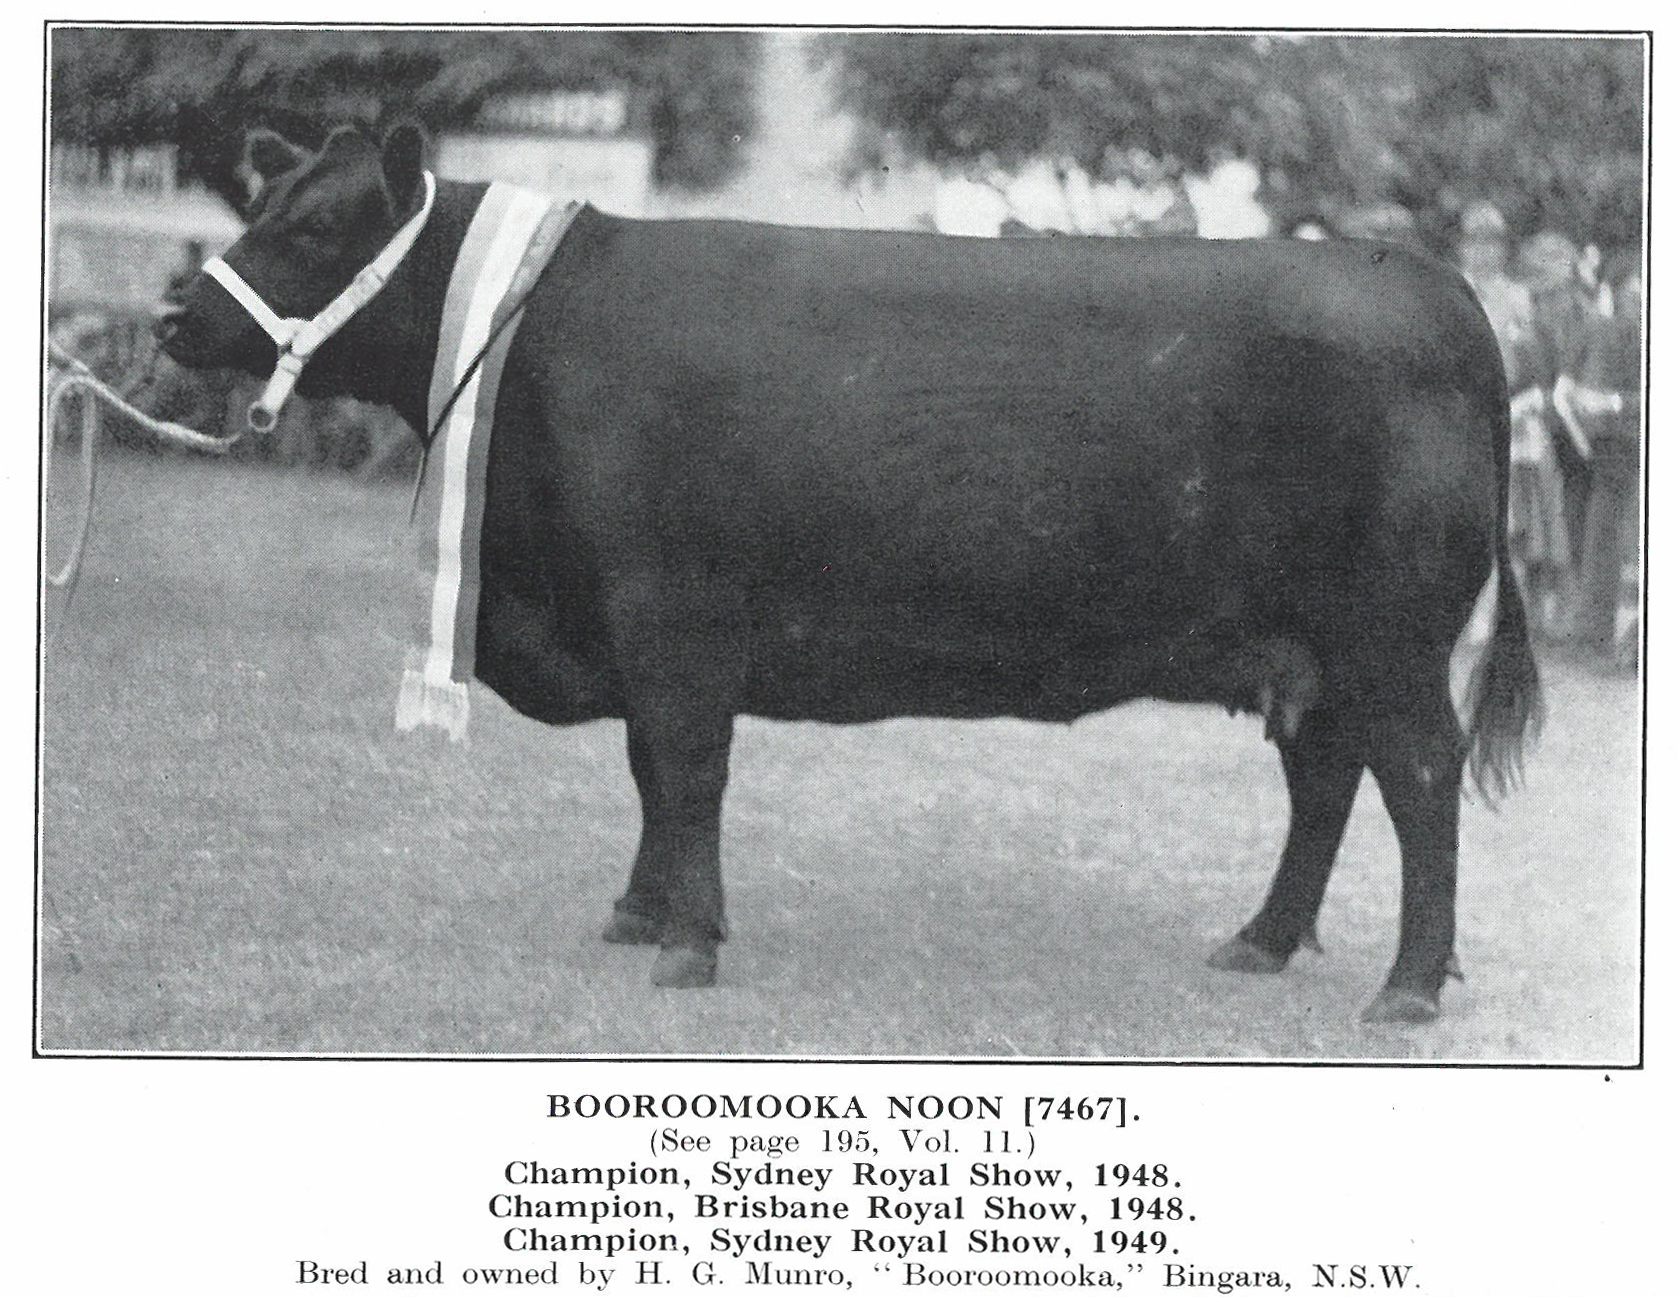 Booroomooka Noon